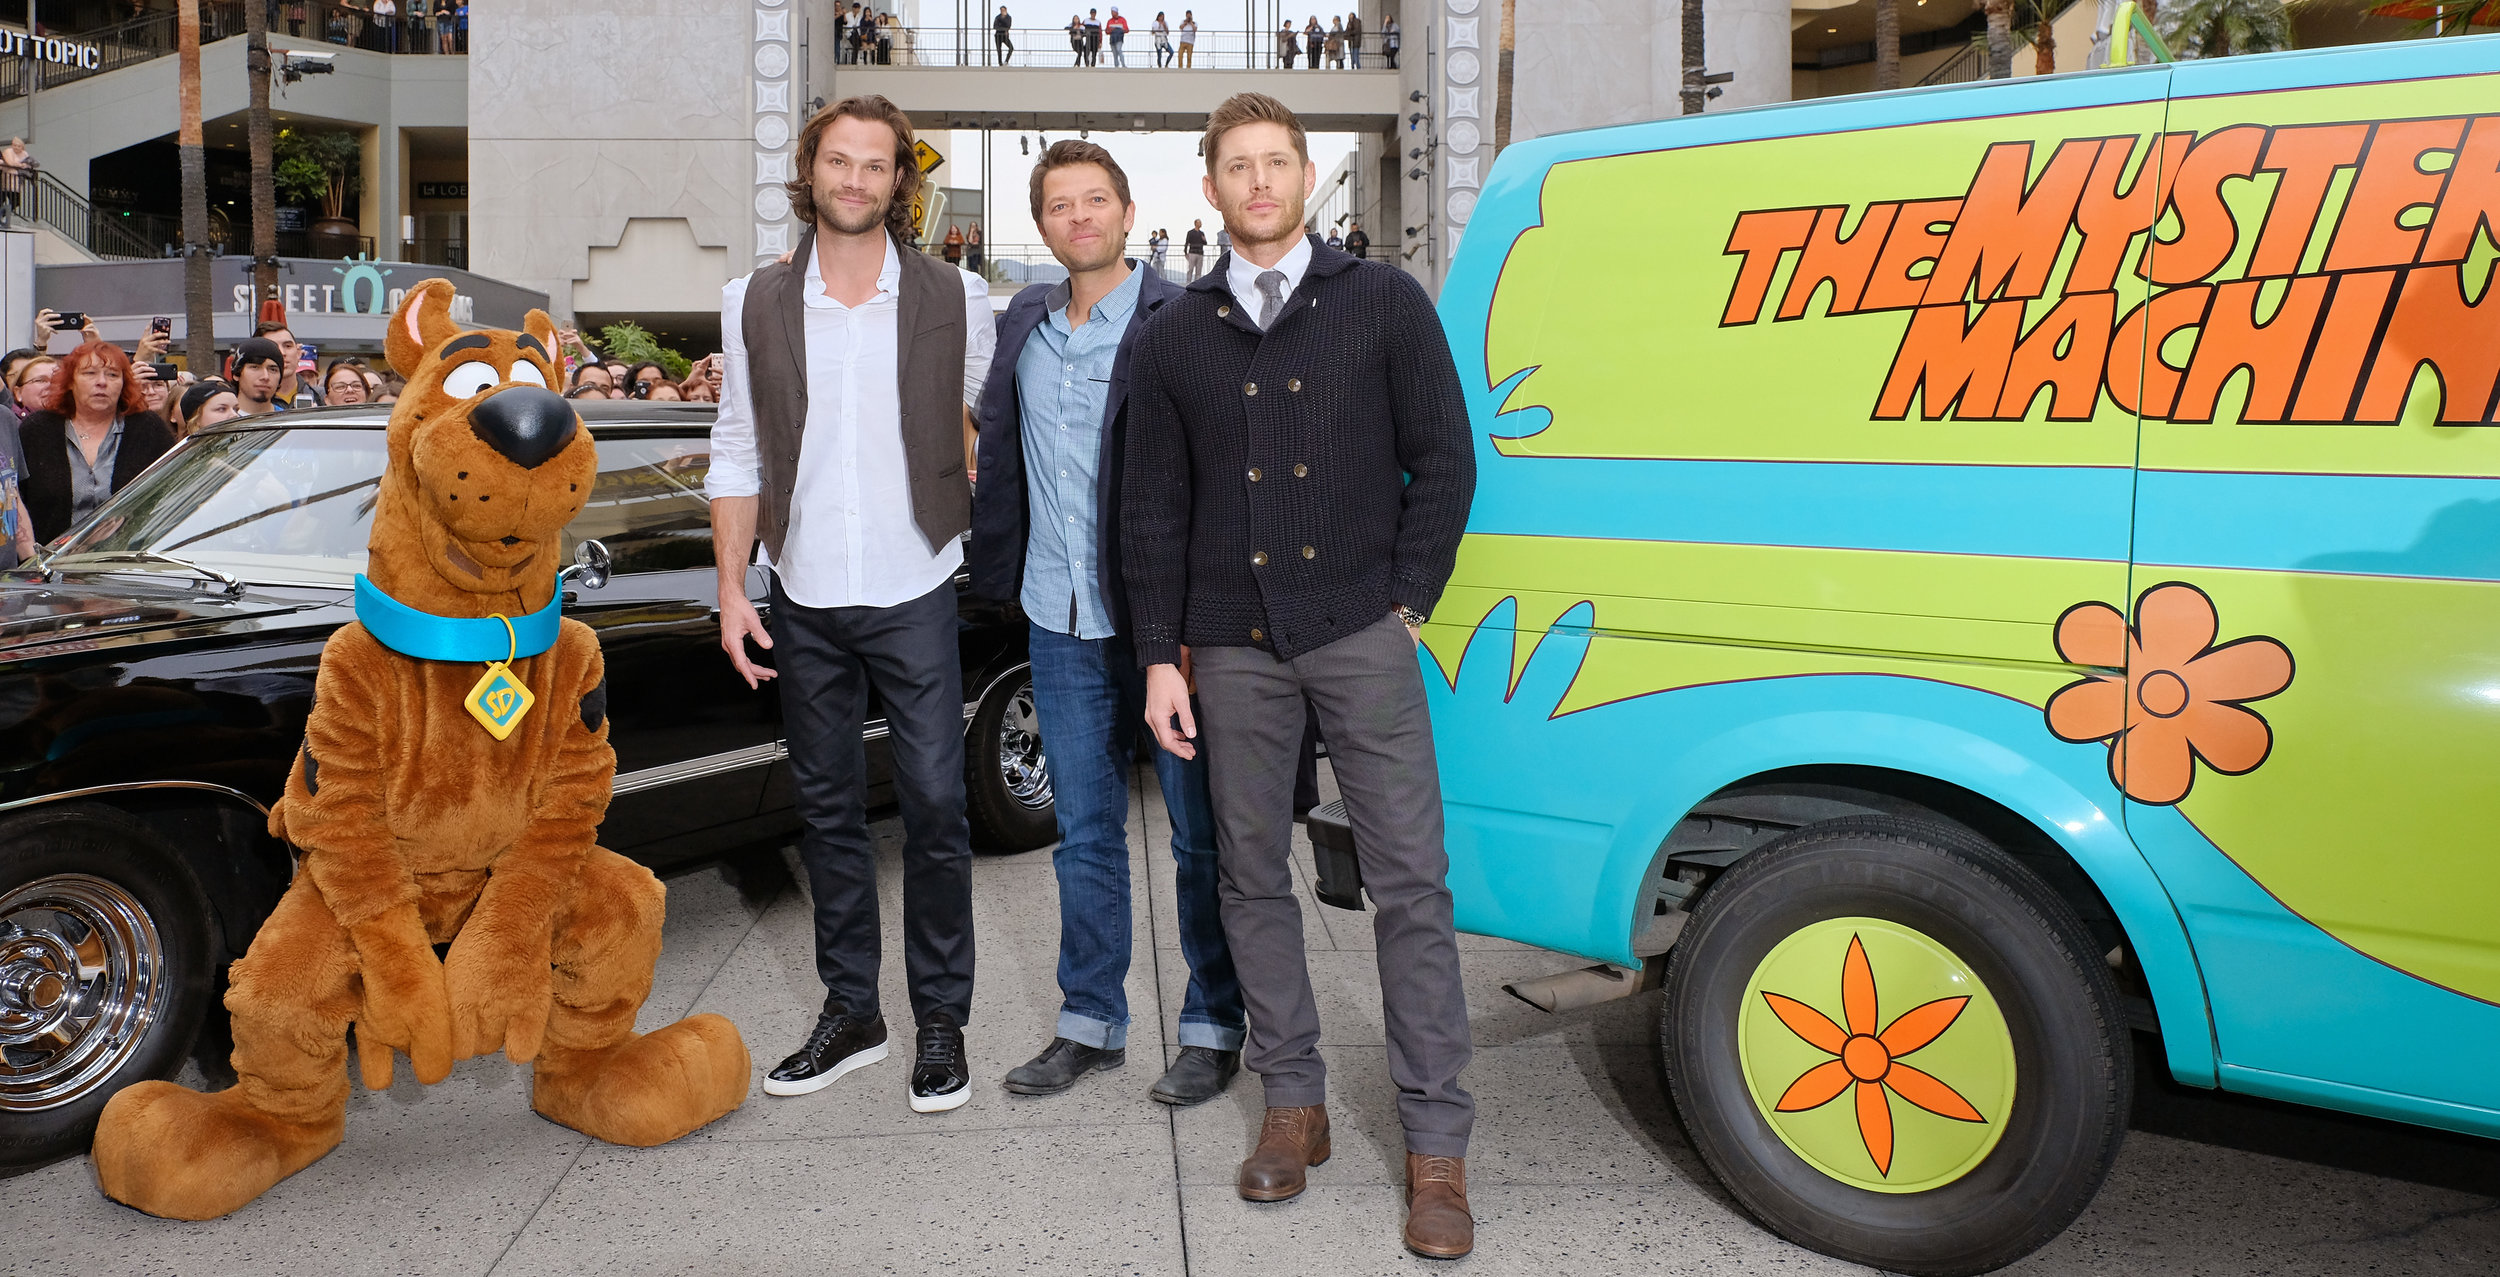 (L-R): Jared Padalecki, Misha Collins, and Jensen Ackles arrive at PaleyFest LA 2018 honoring Supernatural, presented by The Paley Center for Media, at the DOLBY THEATRE on March 20, 2018 in Hollywood, California. Photo Credit: Michael Bulbenko for the Paley Center